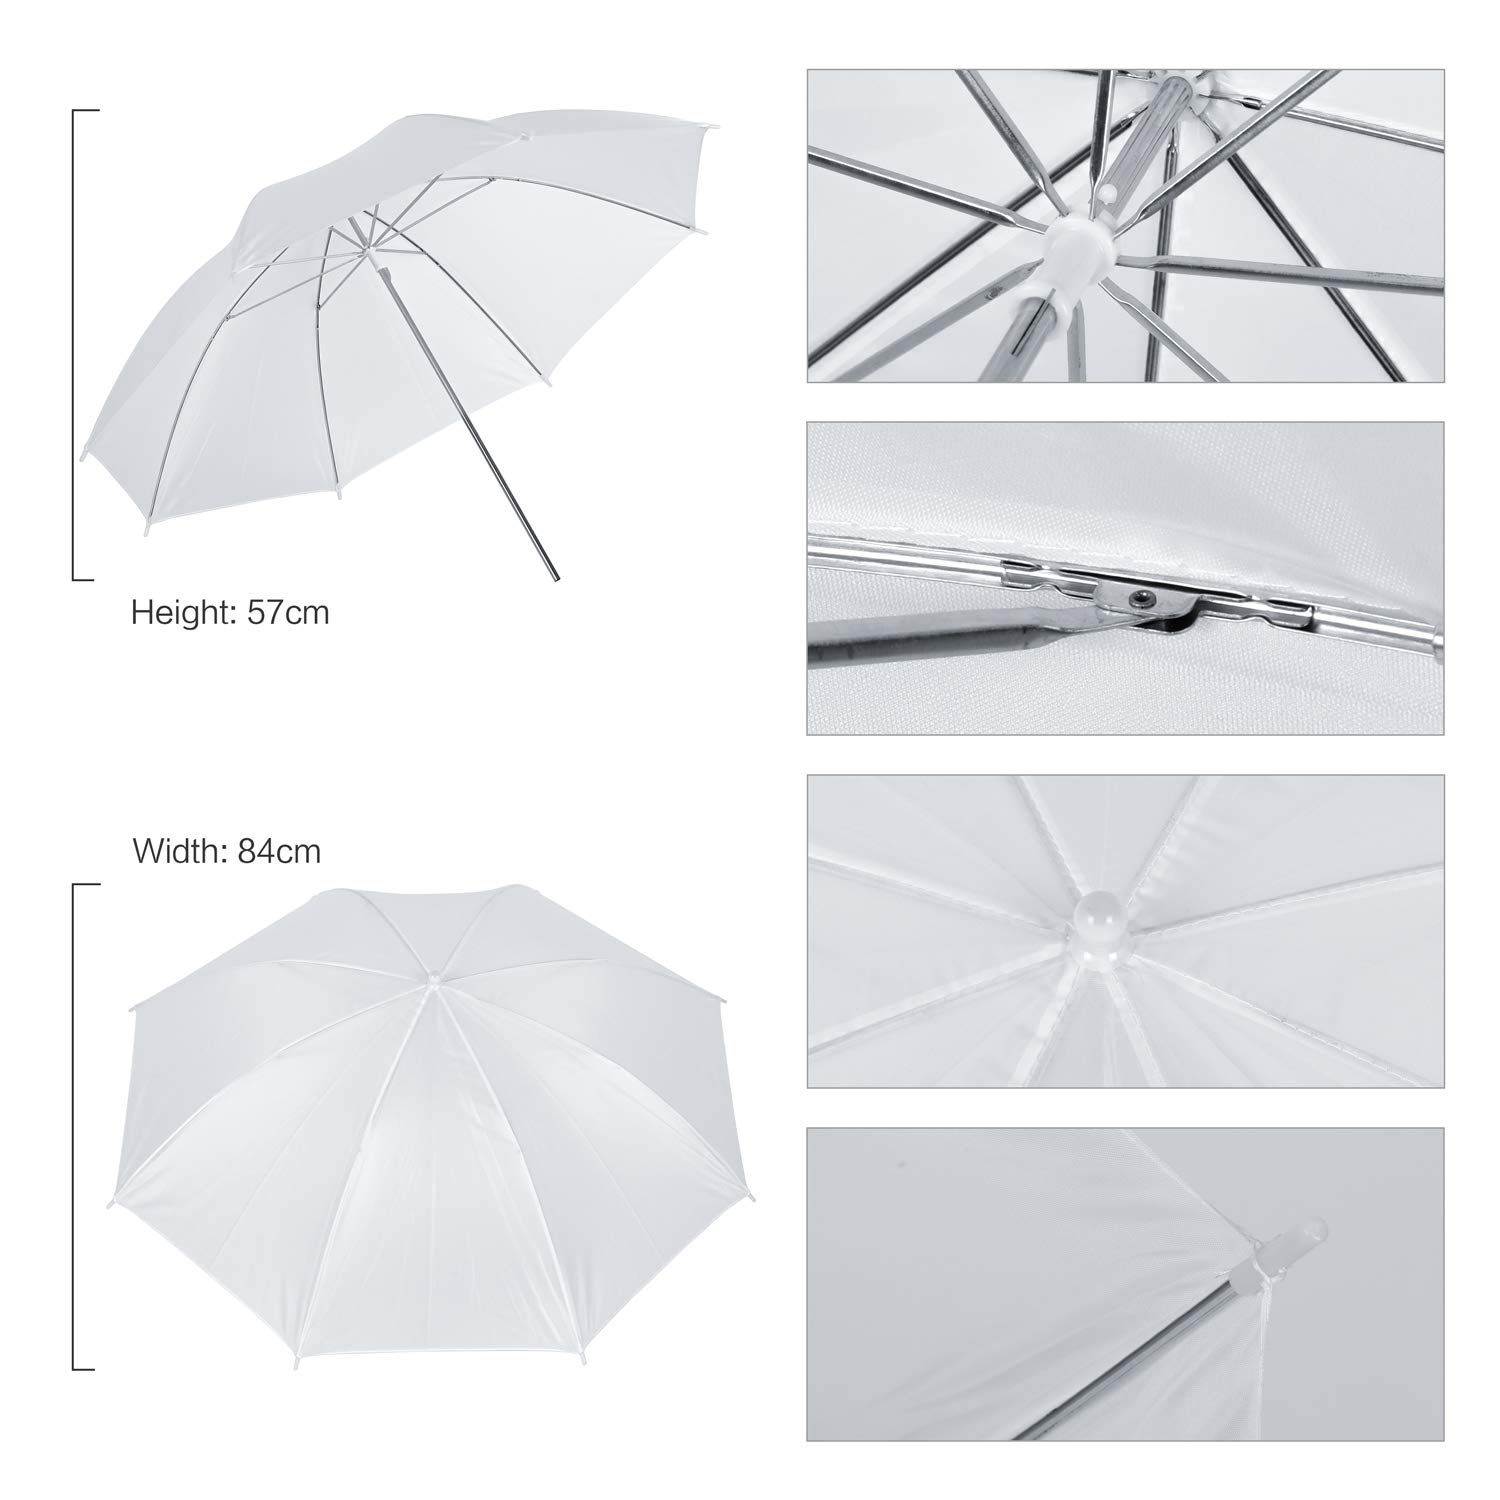 Umbrellas Softbox Continuous Lighting Kit for Photo Studio Product,Portrait and Video Shoot Photography SH 2.6M x 3M//8.5ft x 10ft Background Support System and 4 x 85W 5500K Bulbs